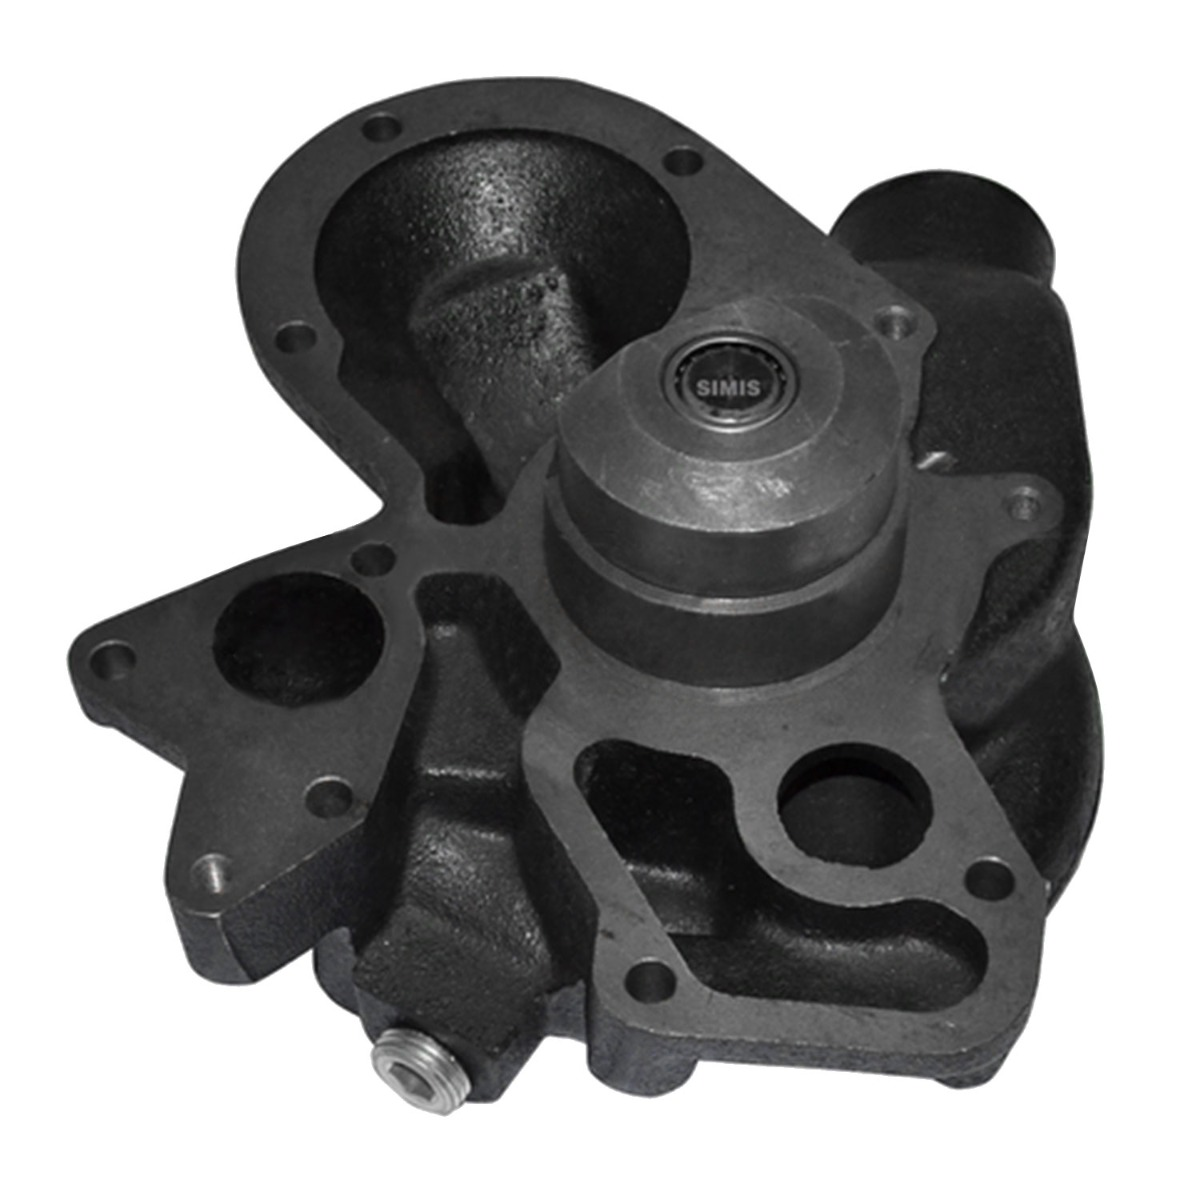 Water Pump 0224-3 Compatible with Perkins 1004.4/1004.4t V82